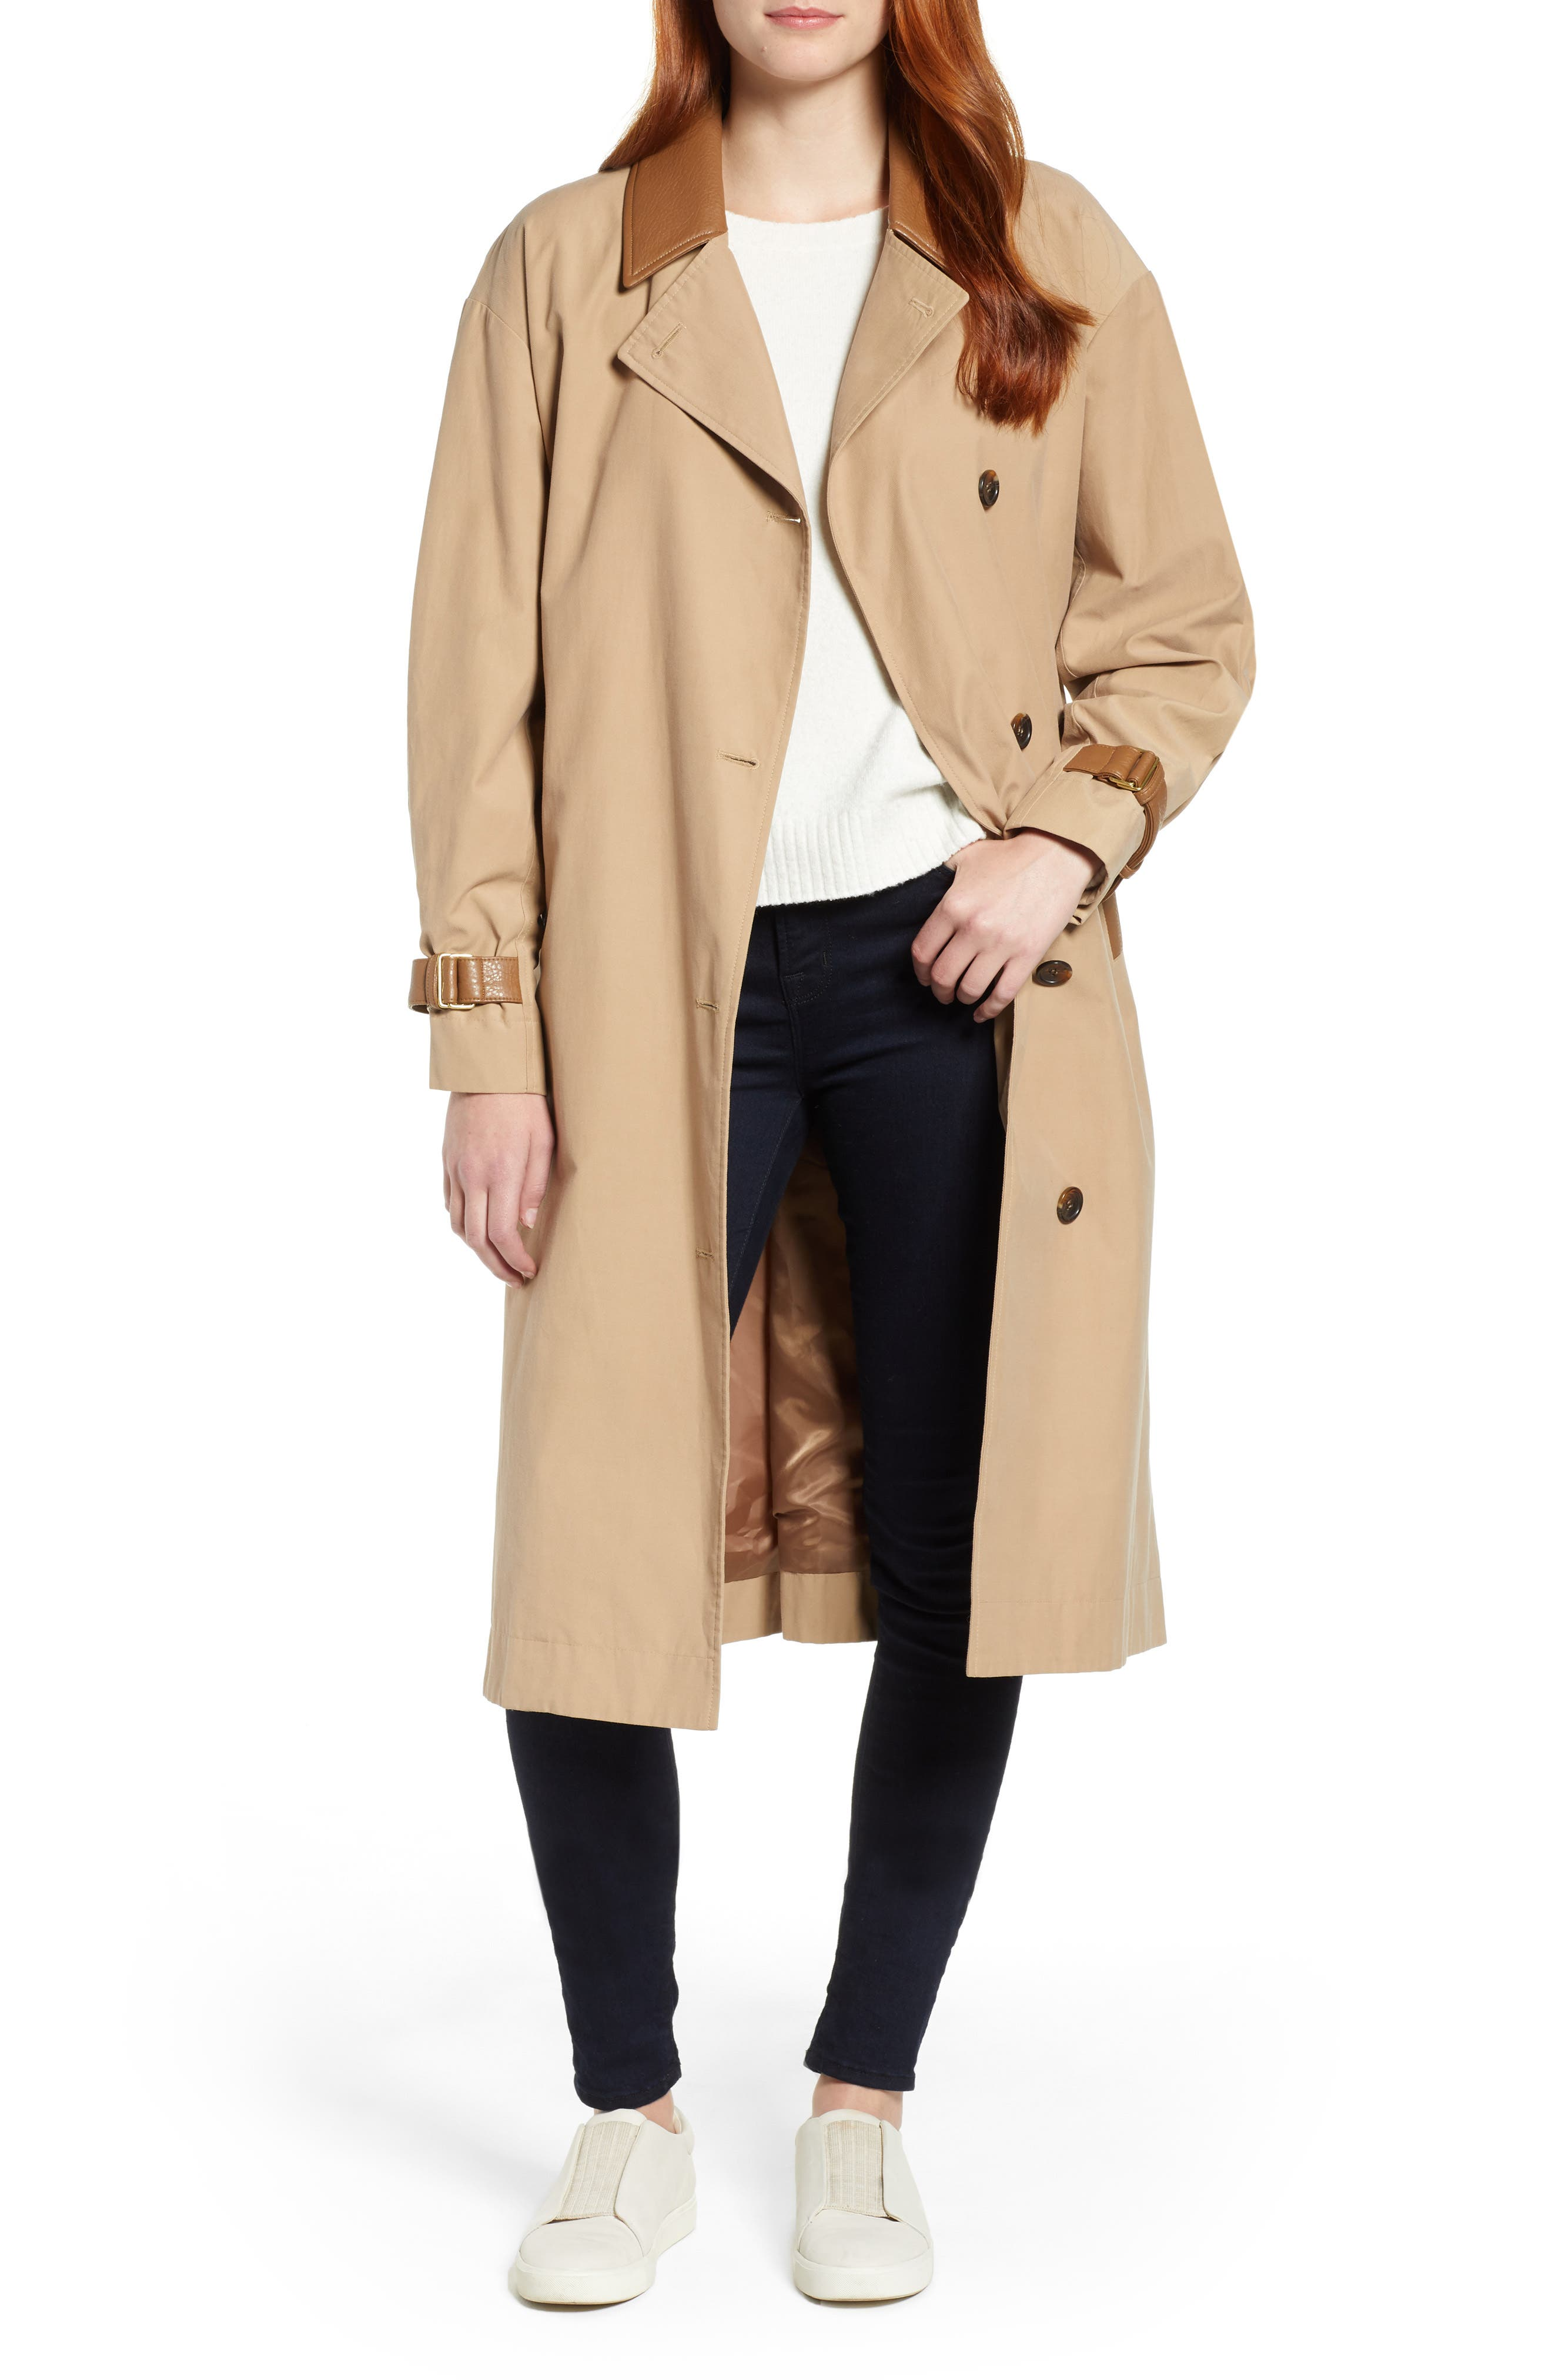 1940s Coats & Jackets Fashion History Womens Sosken Grace Oversize Twill Trench Coat $464.90 AT vintagedancer.com